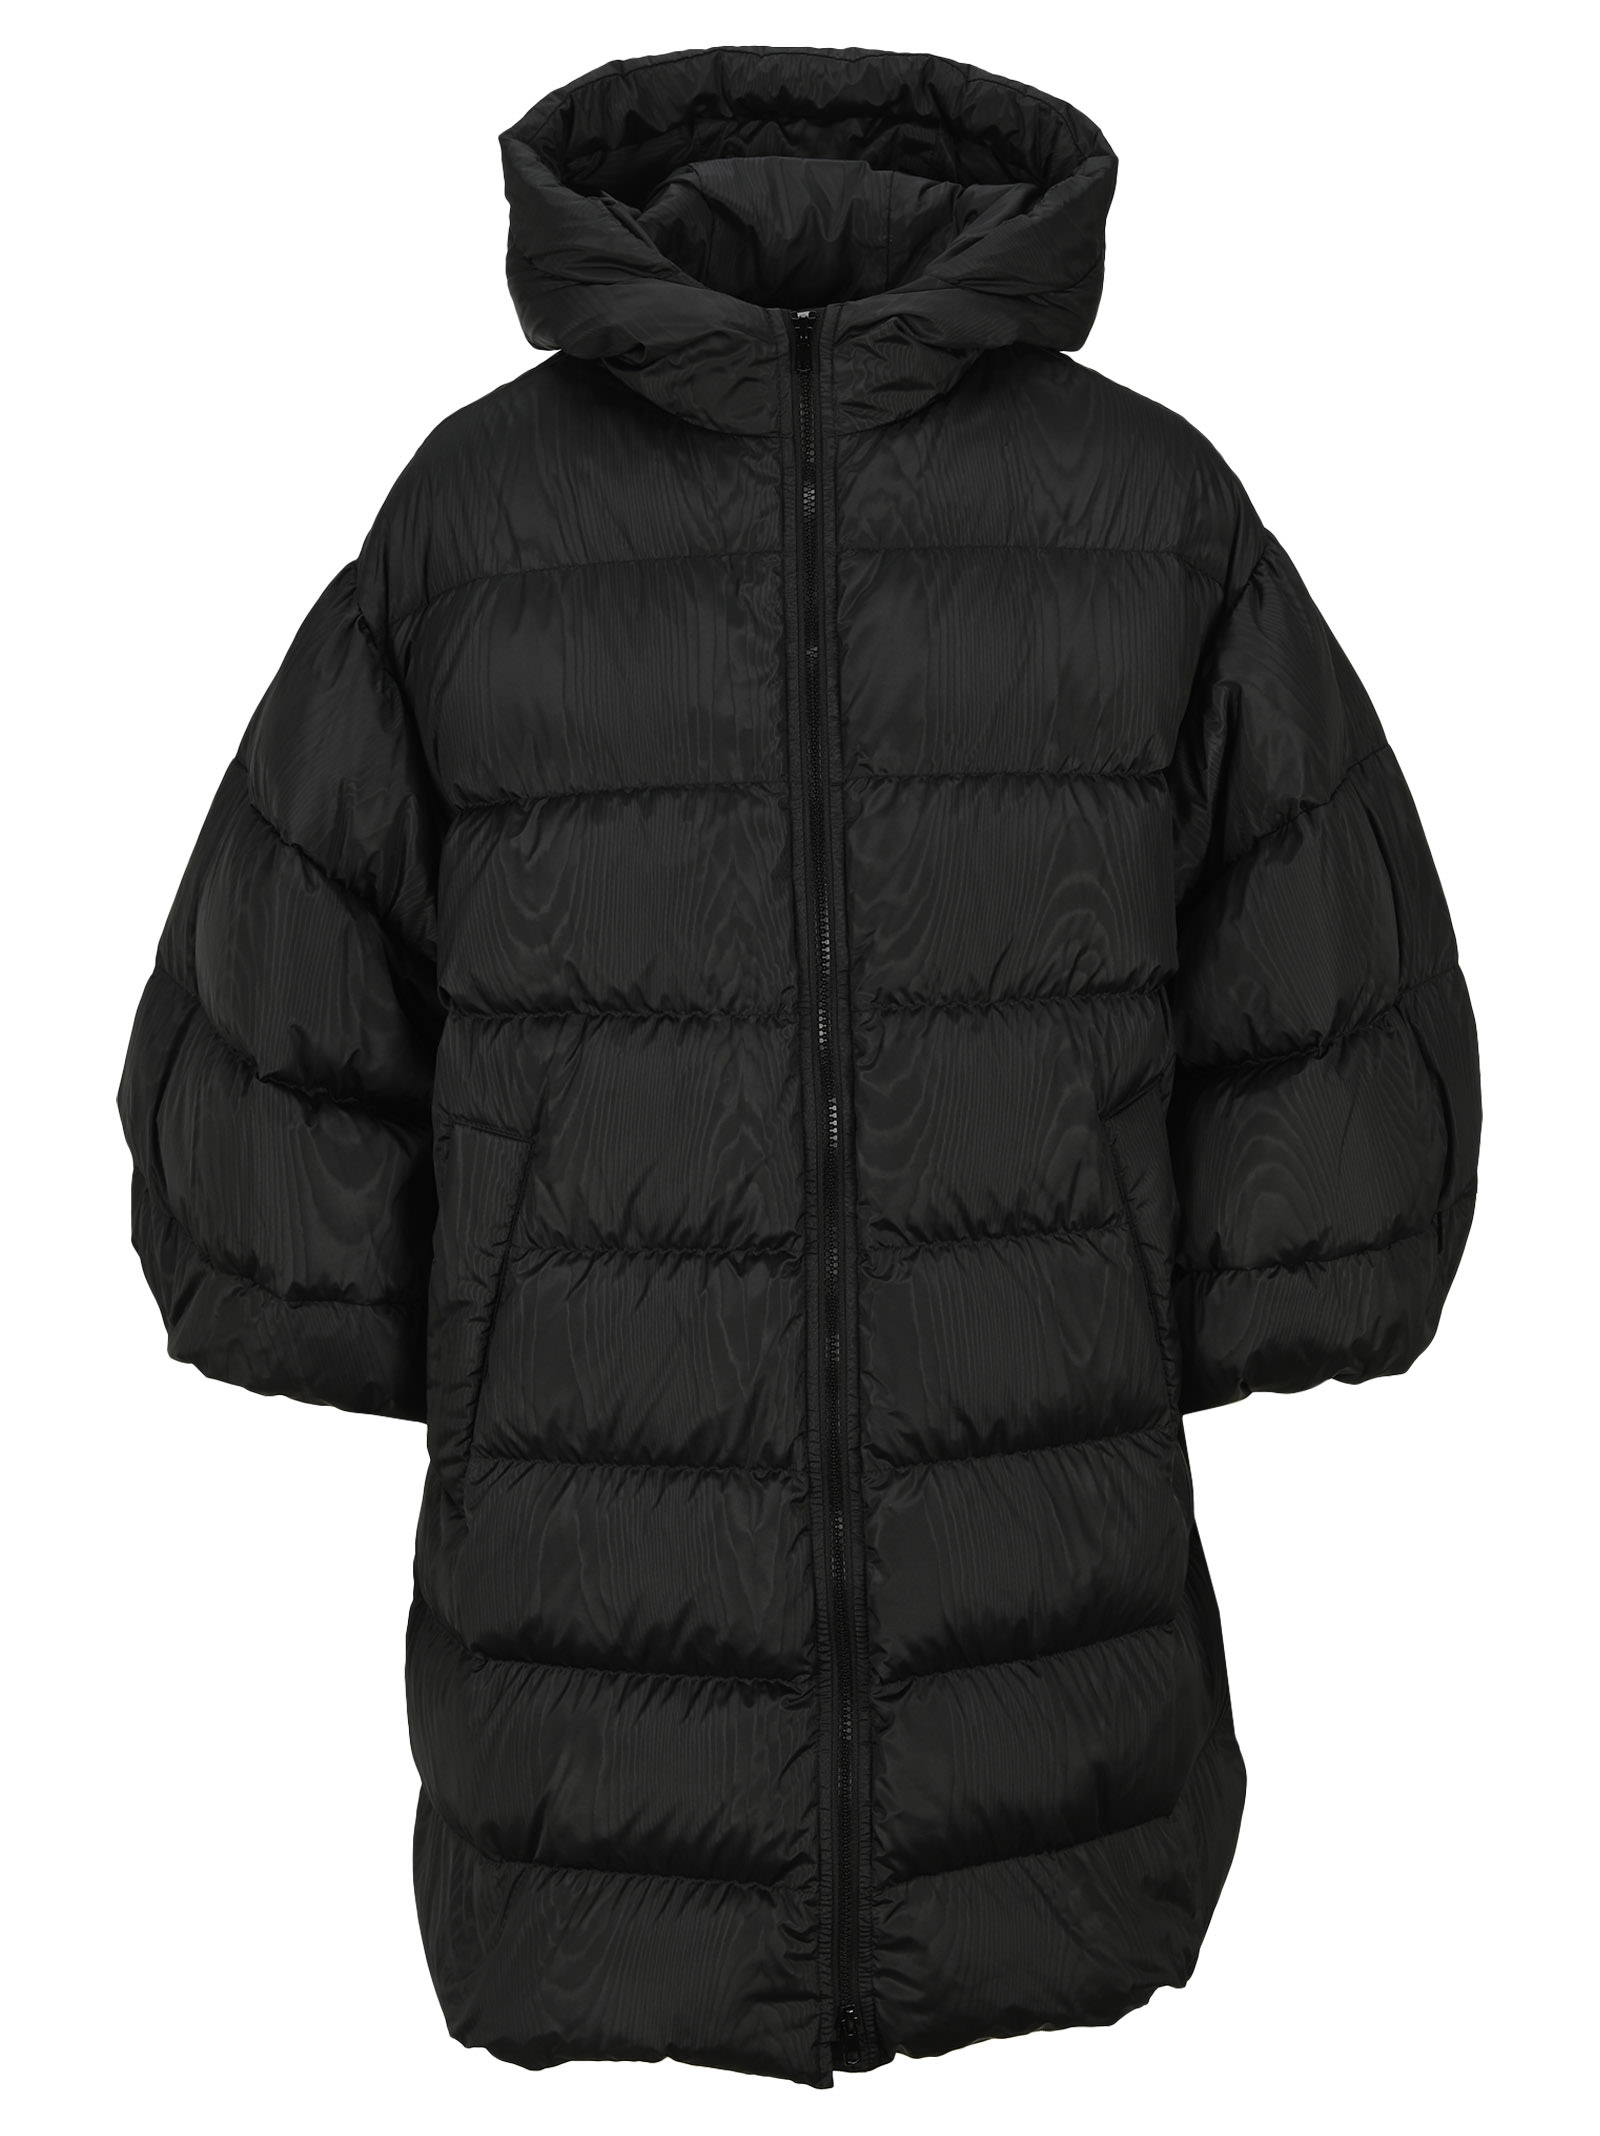 Black Down Jacket By Red Valentino Featuring: - High Neck - Front Zip Fastening - Half-length Sleeves - Padded DesignComposition: 100% POLYESTER